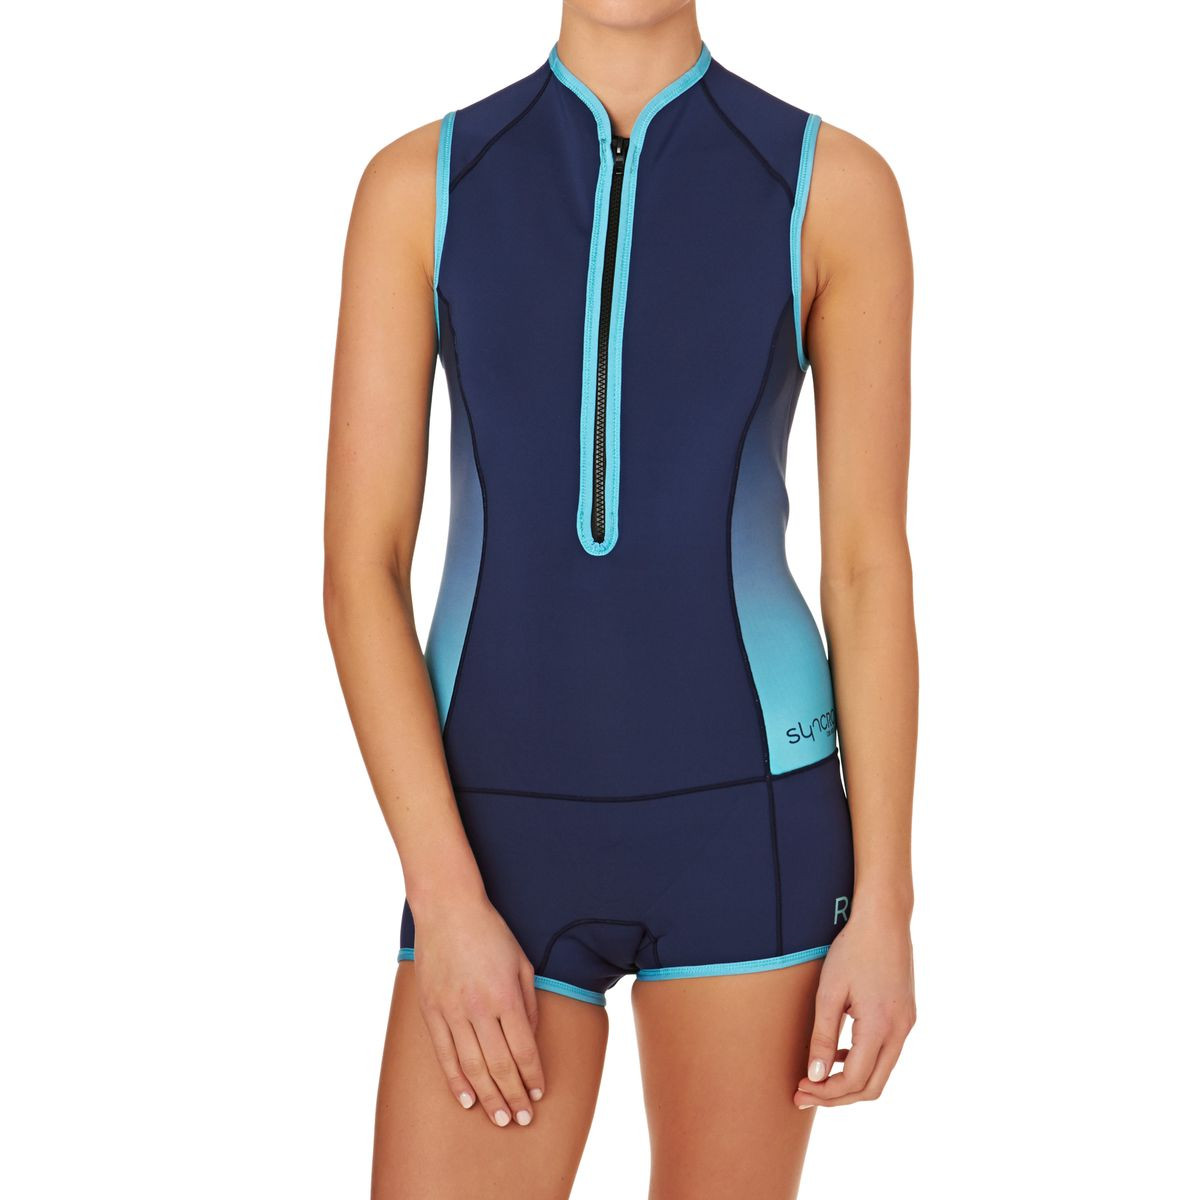 Roxy Womens Syncro 1mm Front Zip Short John Wetsuit - Blue Print